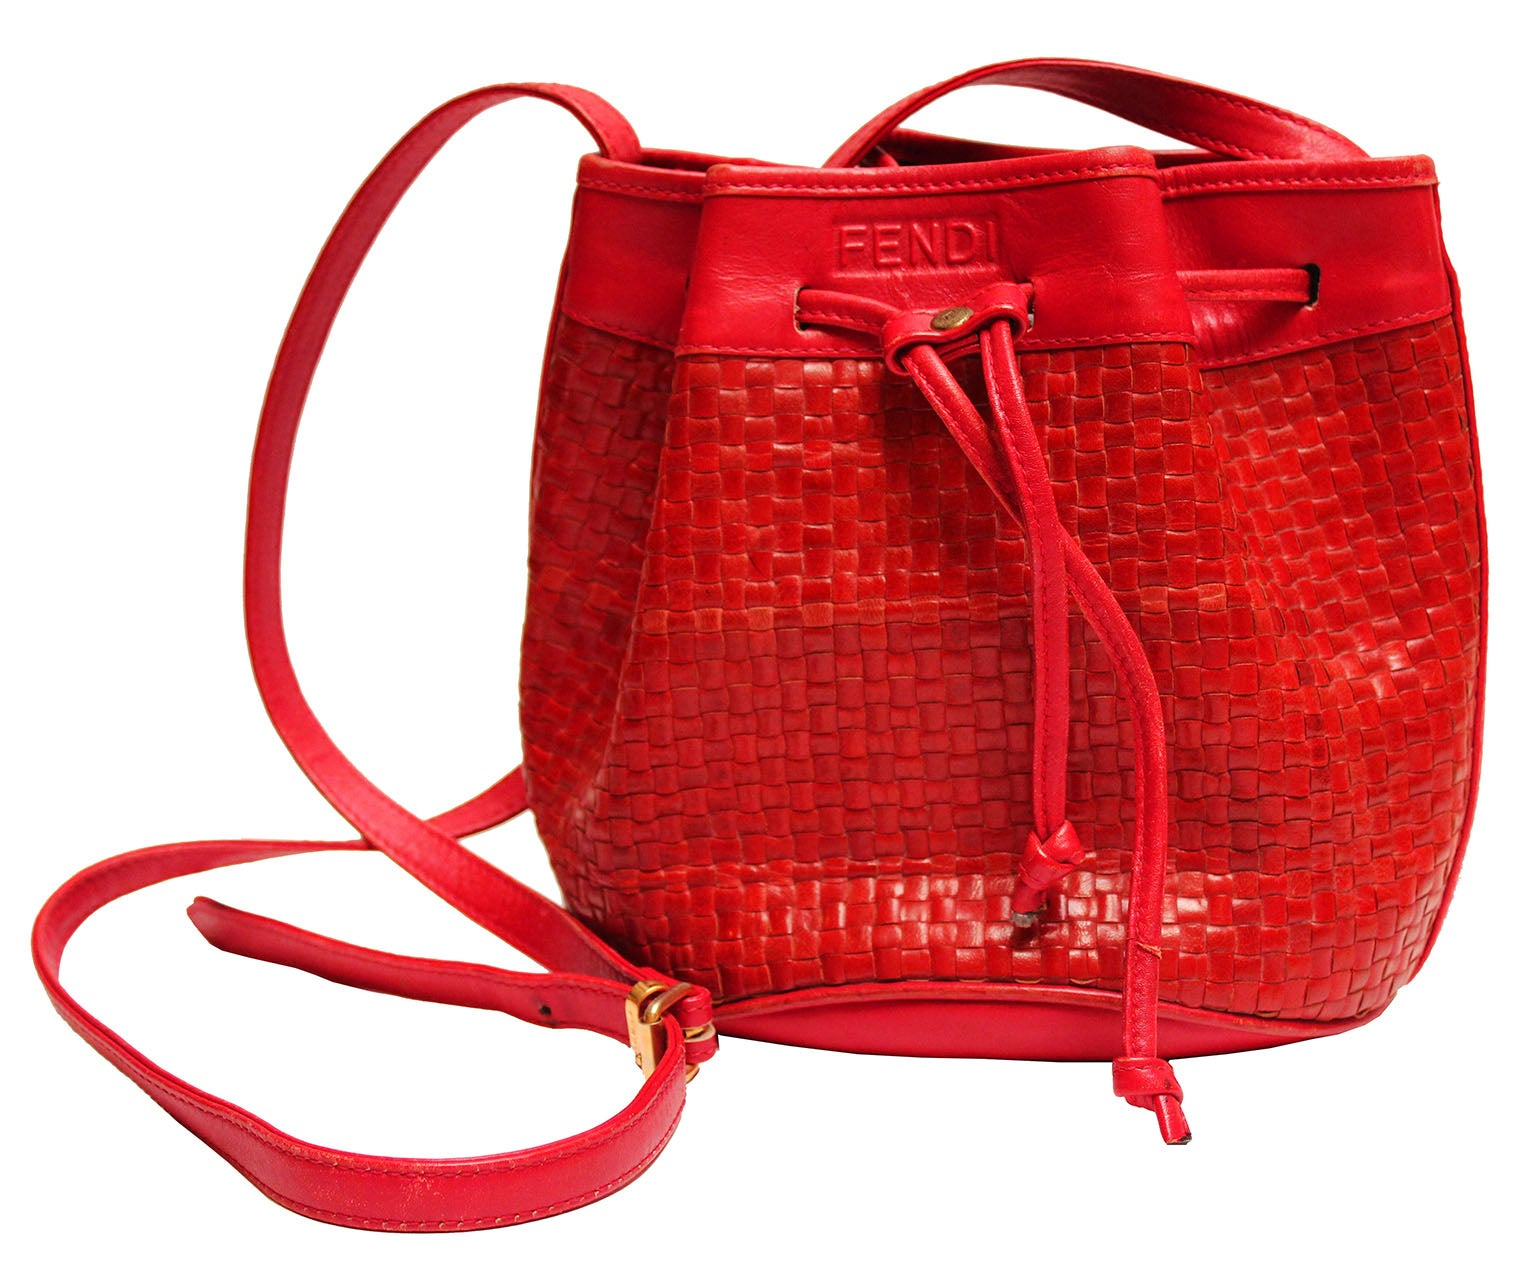 f72032357851 1970s Fendi Red Woven Leather Bucket Bag at 1stdibs